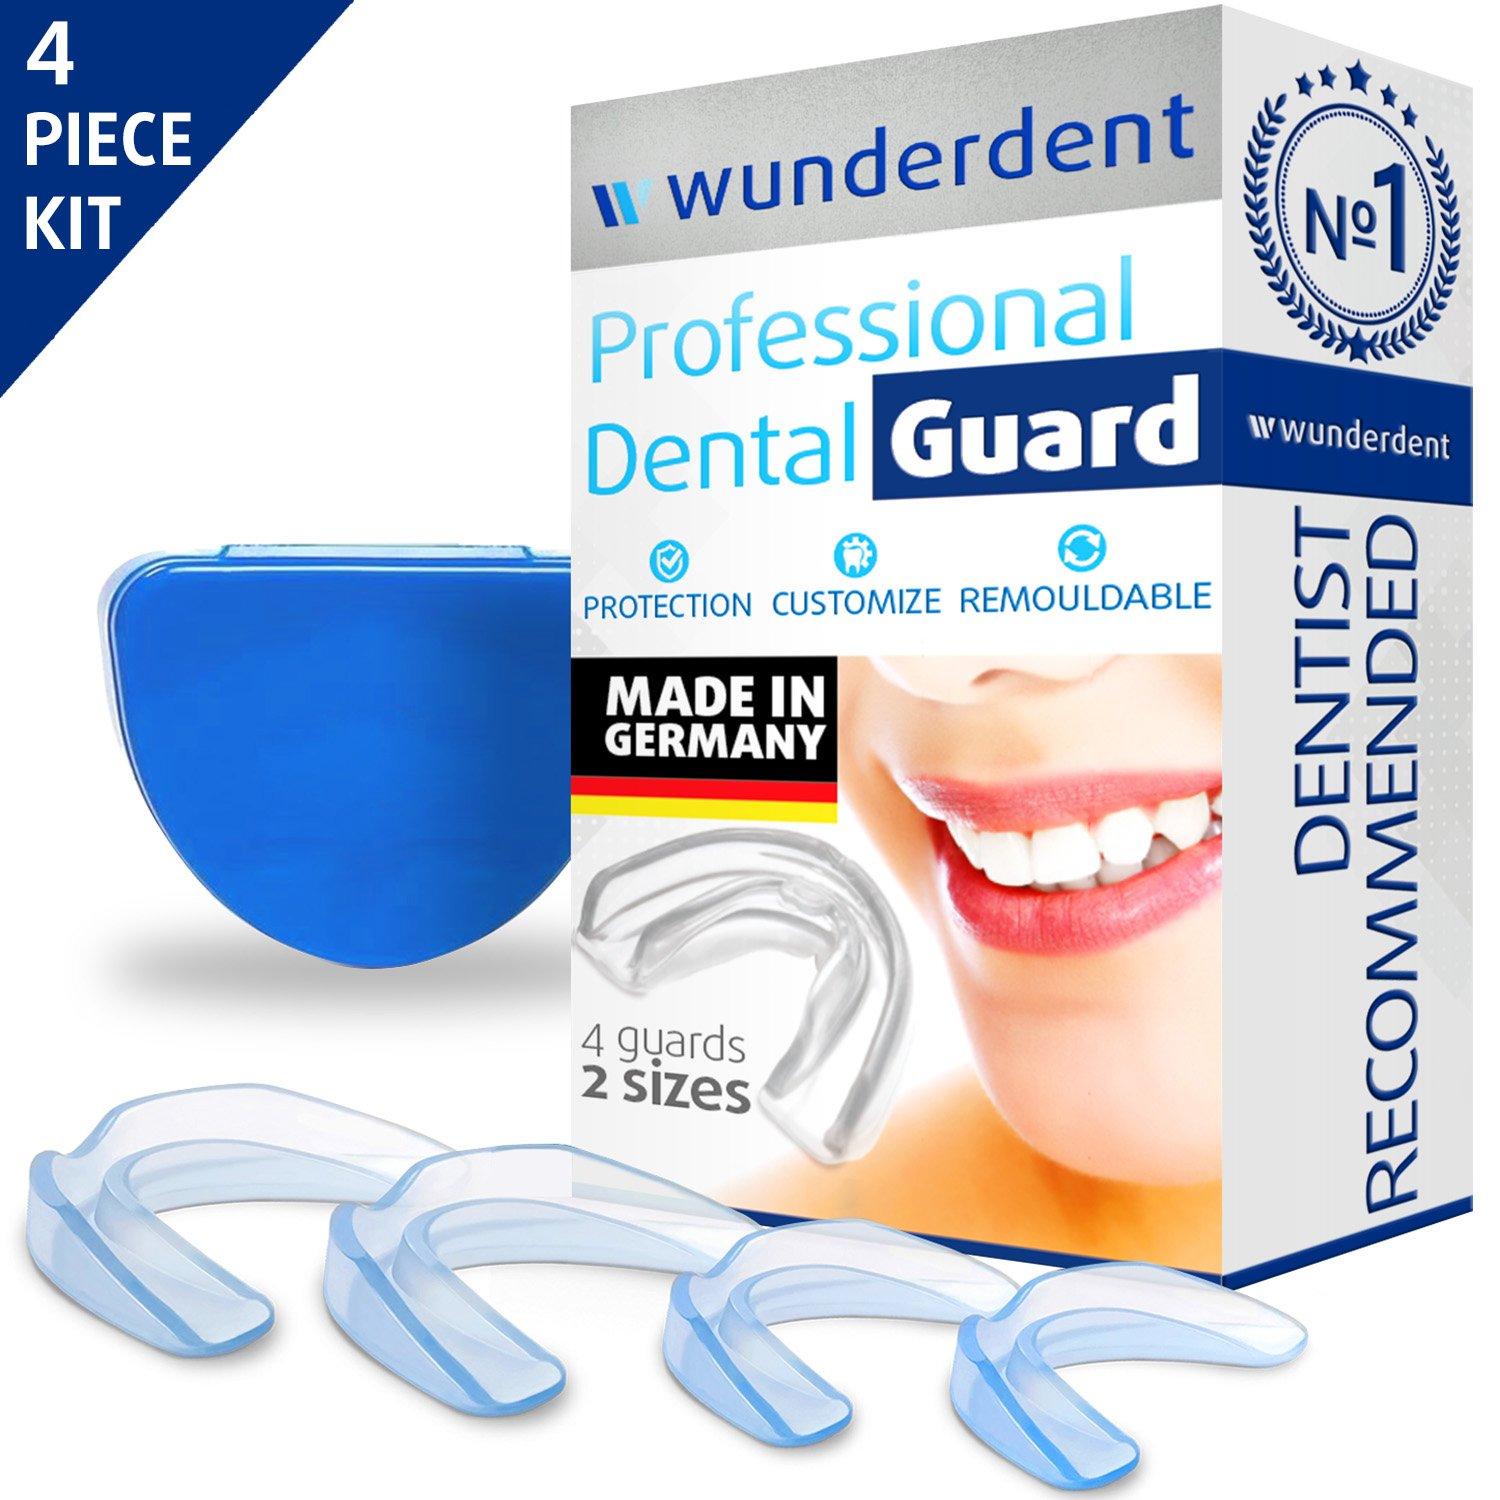 Professional Dental Night Guard - Pack of 4 - Made in Germany - Teeth Grinding Night Protector, Athletic Mouth Guard, Teeth Whitening Tray - Stops Bruxism, Eliminates TMJ & Teeth Clenching - BPA Free